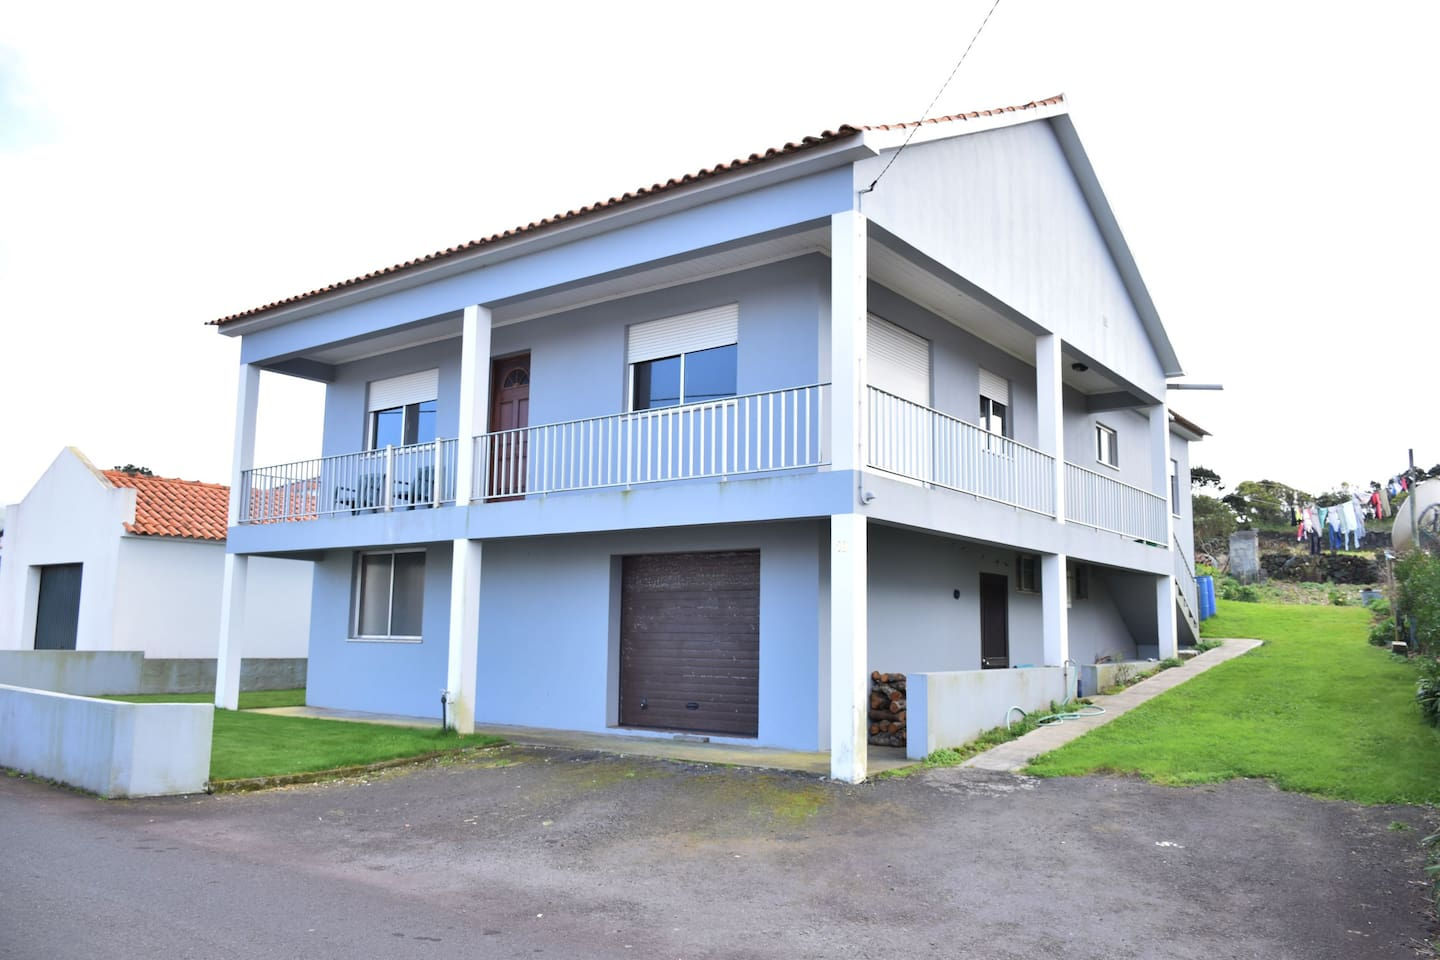 Two story home. Downstairs is hosts apartment. Upstairs is rental apartment.